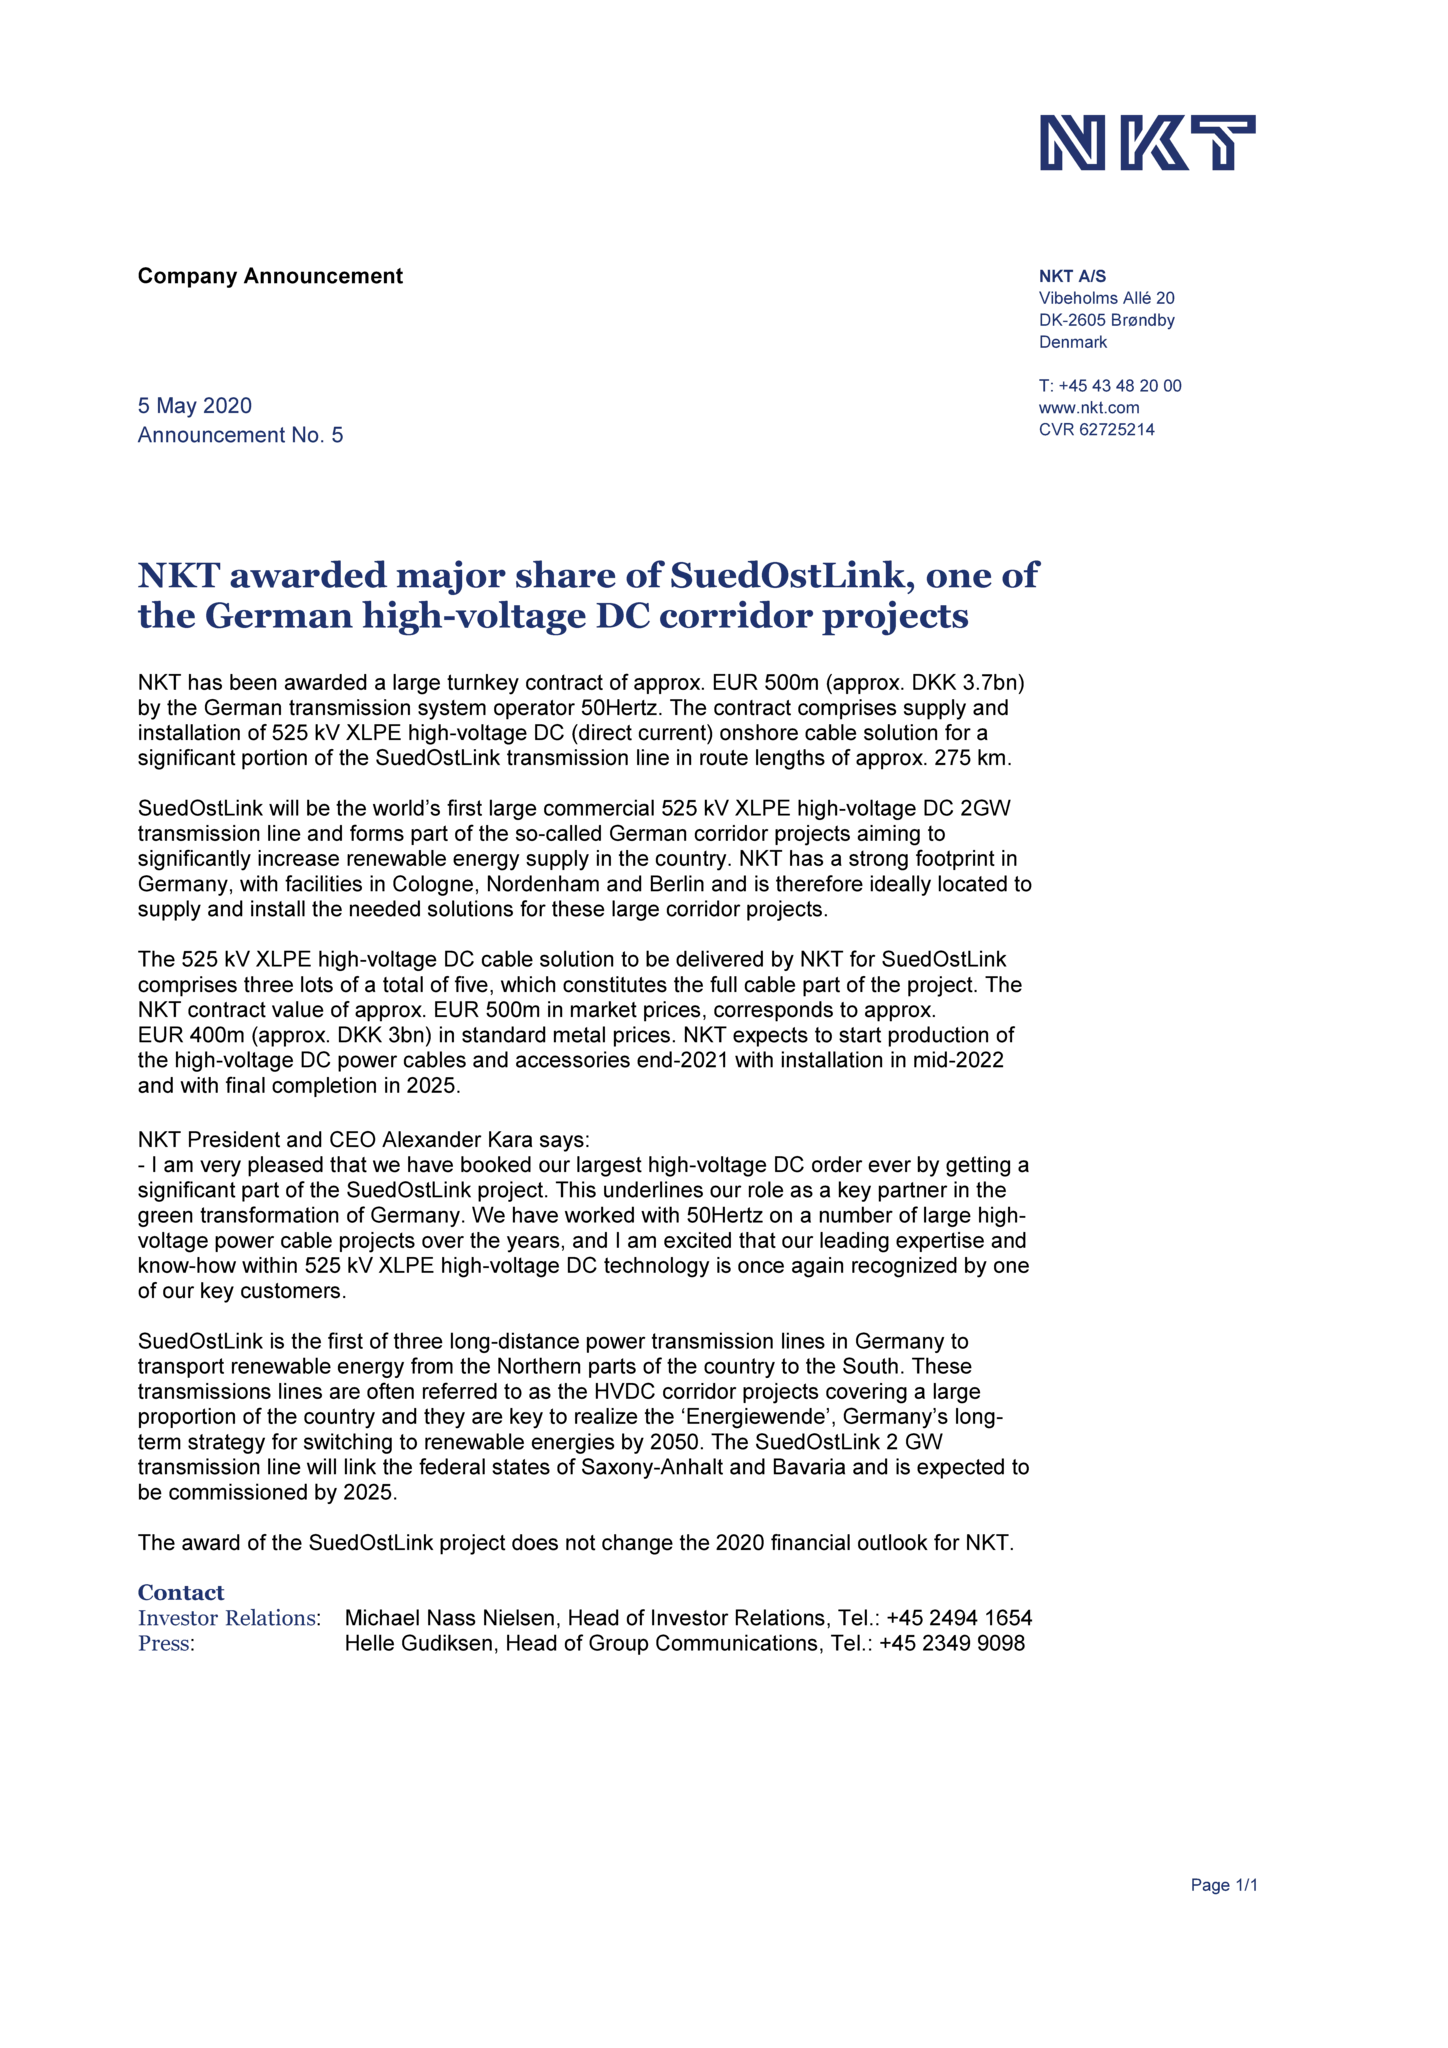 NKT awarded major share of SuedOstLink_one of the German high-voltage DC corridor projects_5.pdf